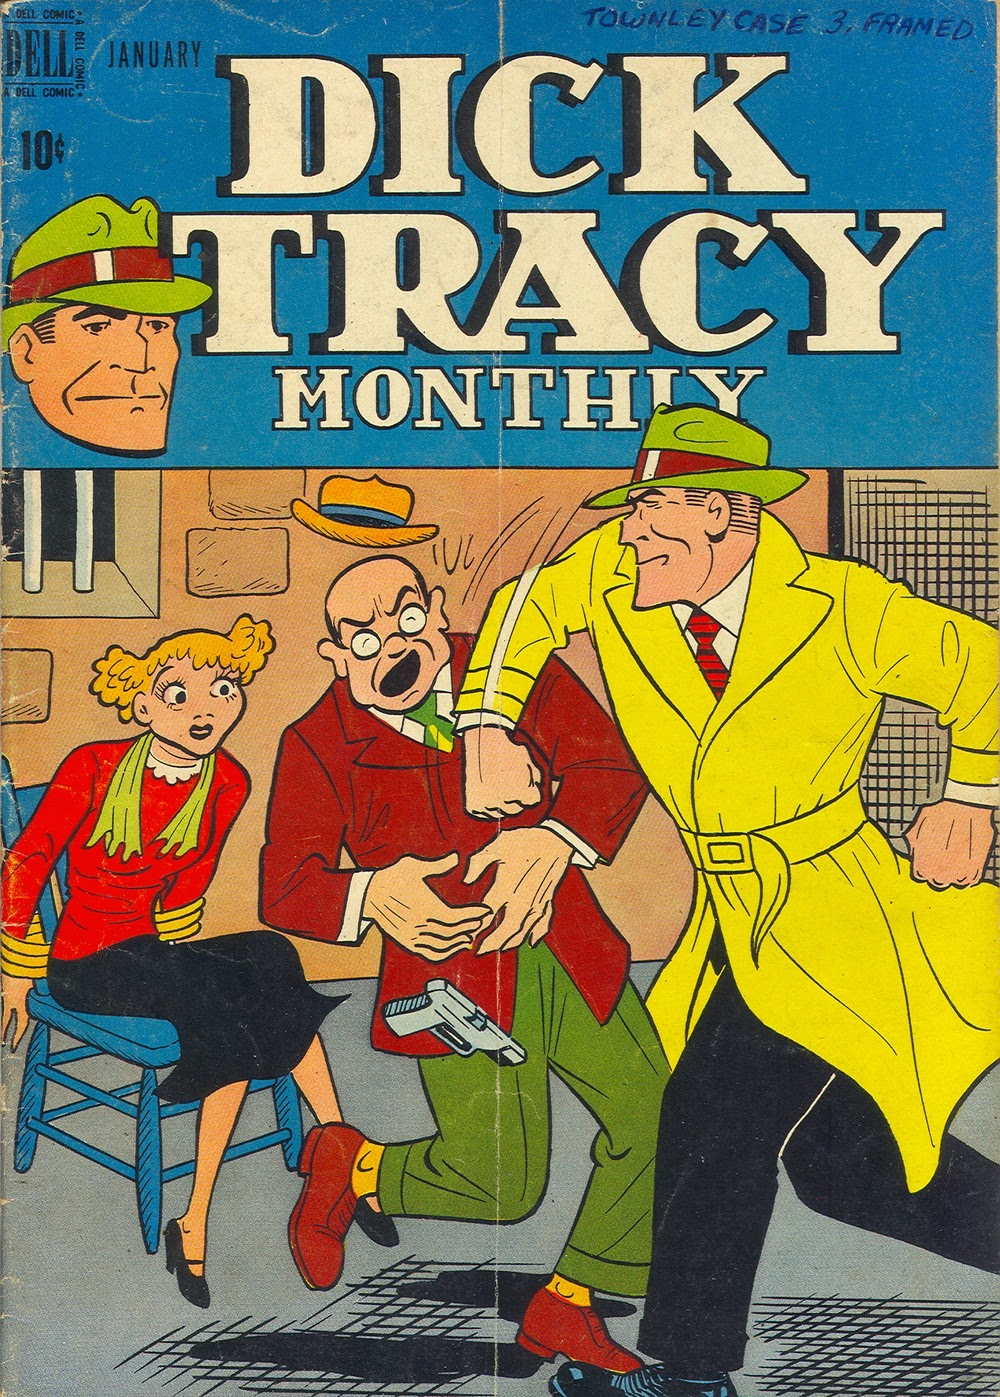 Dick Tracy Monthly 13 Page 1